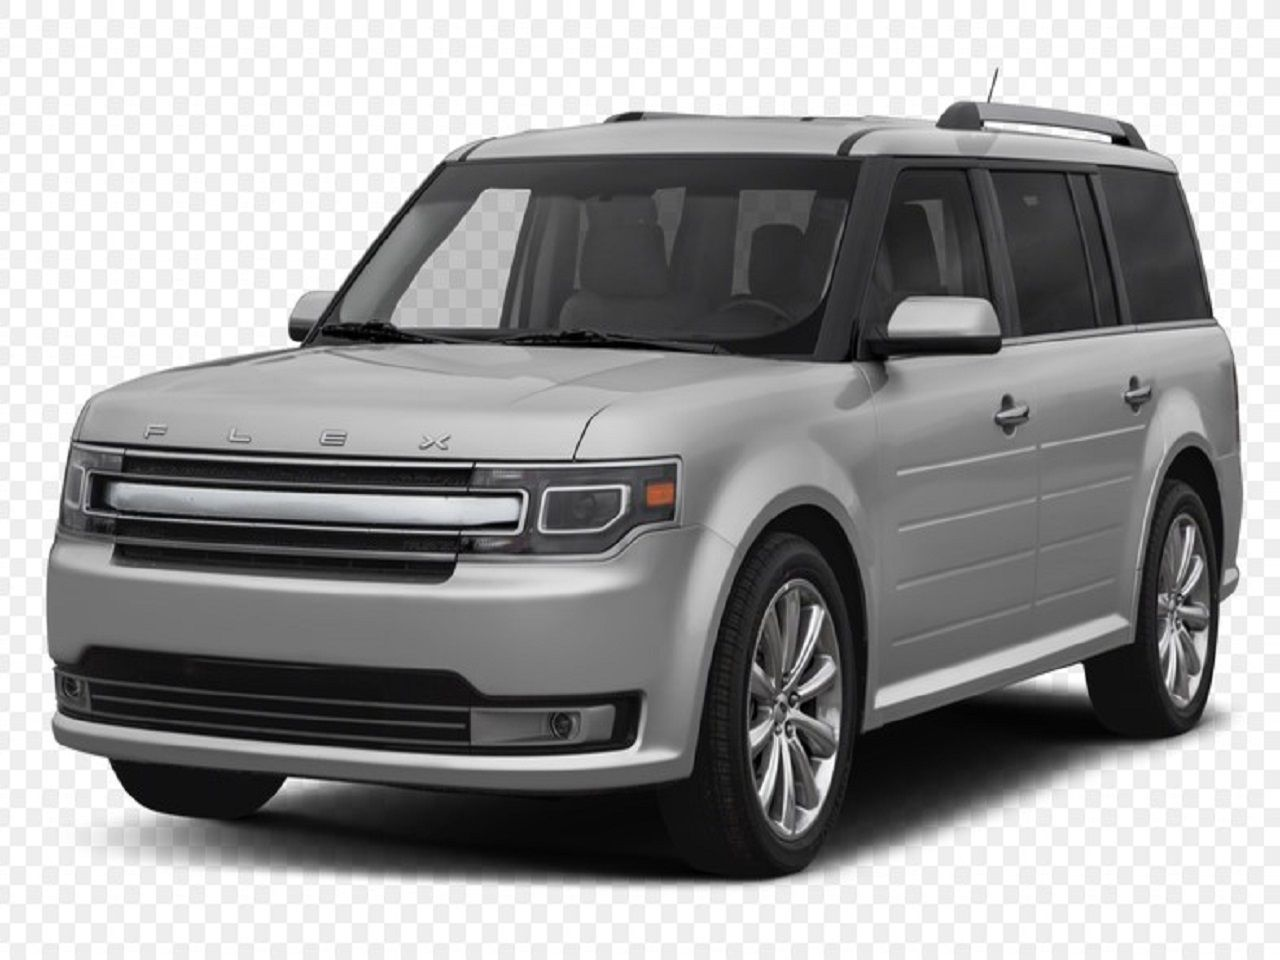 2019 Ford Flex Exterior Design